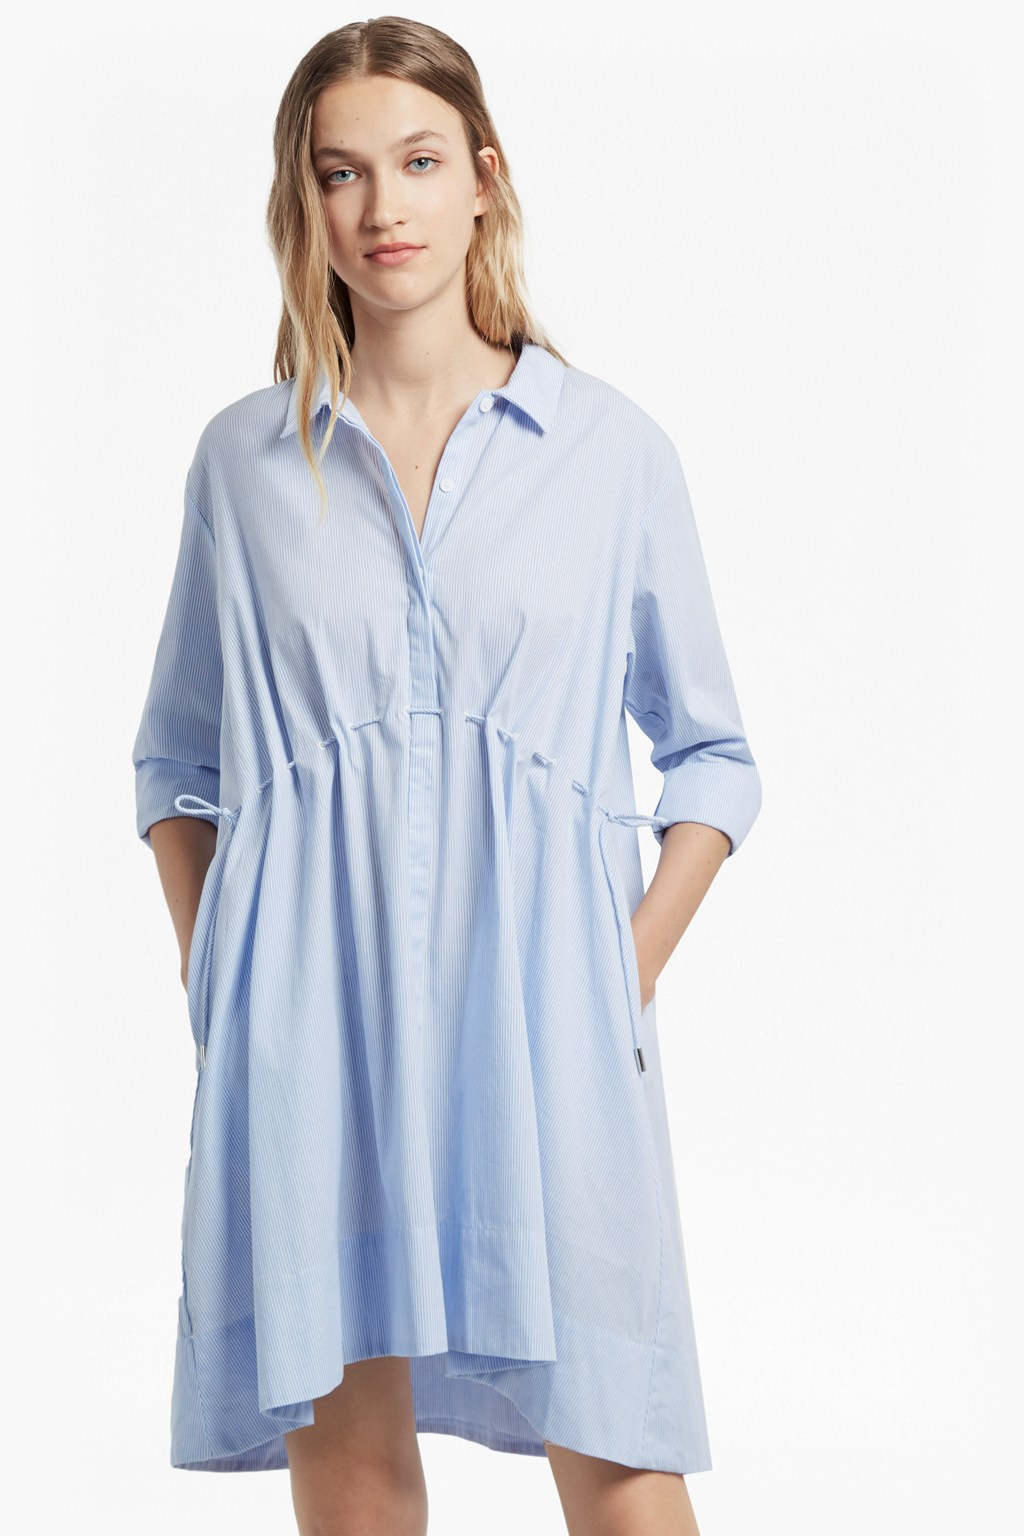 6c9771a869 Smithson Striped Cotton Shirt Dress. loading images.